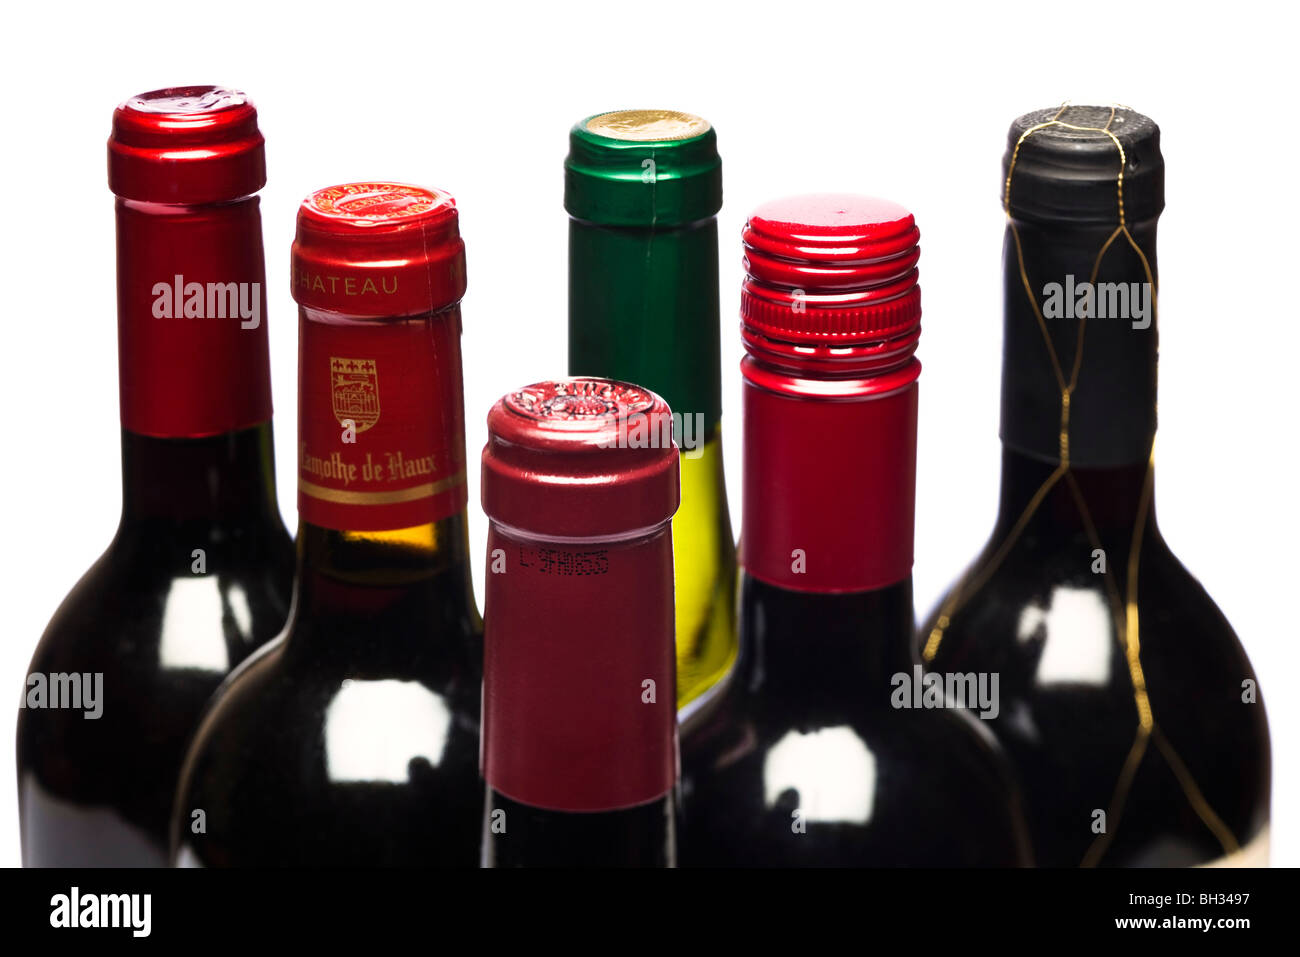 Group of red wine bottles - Stock Image